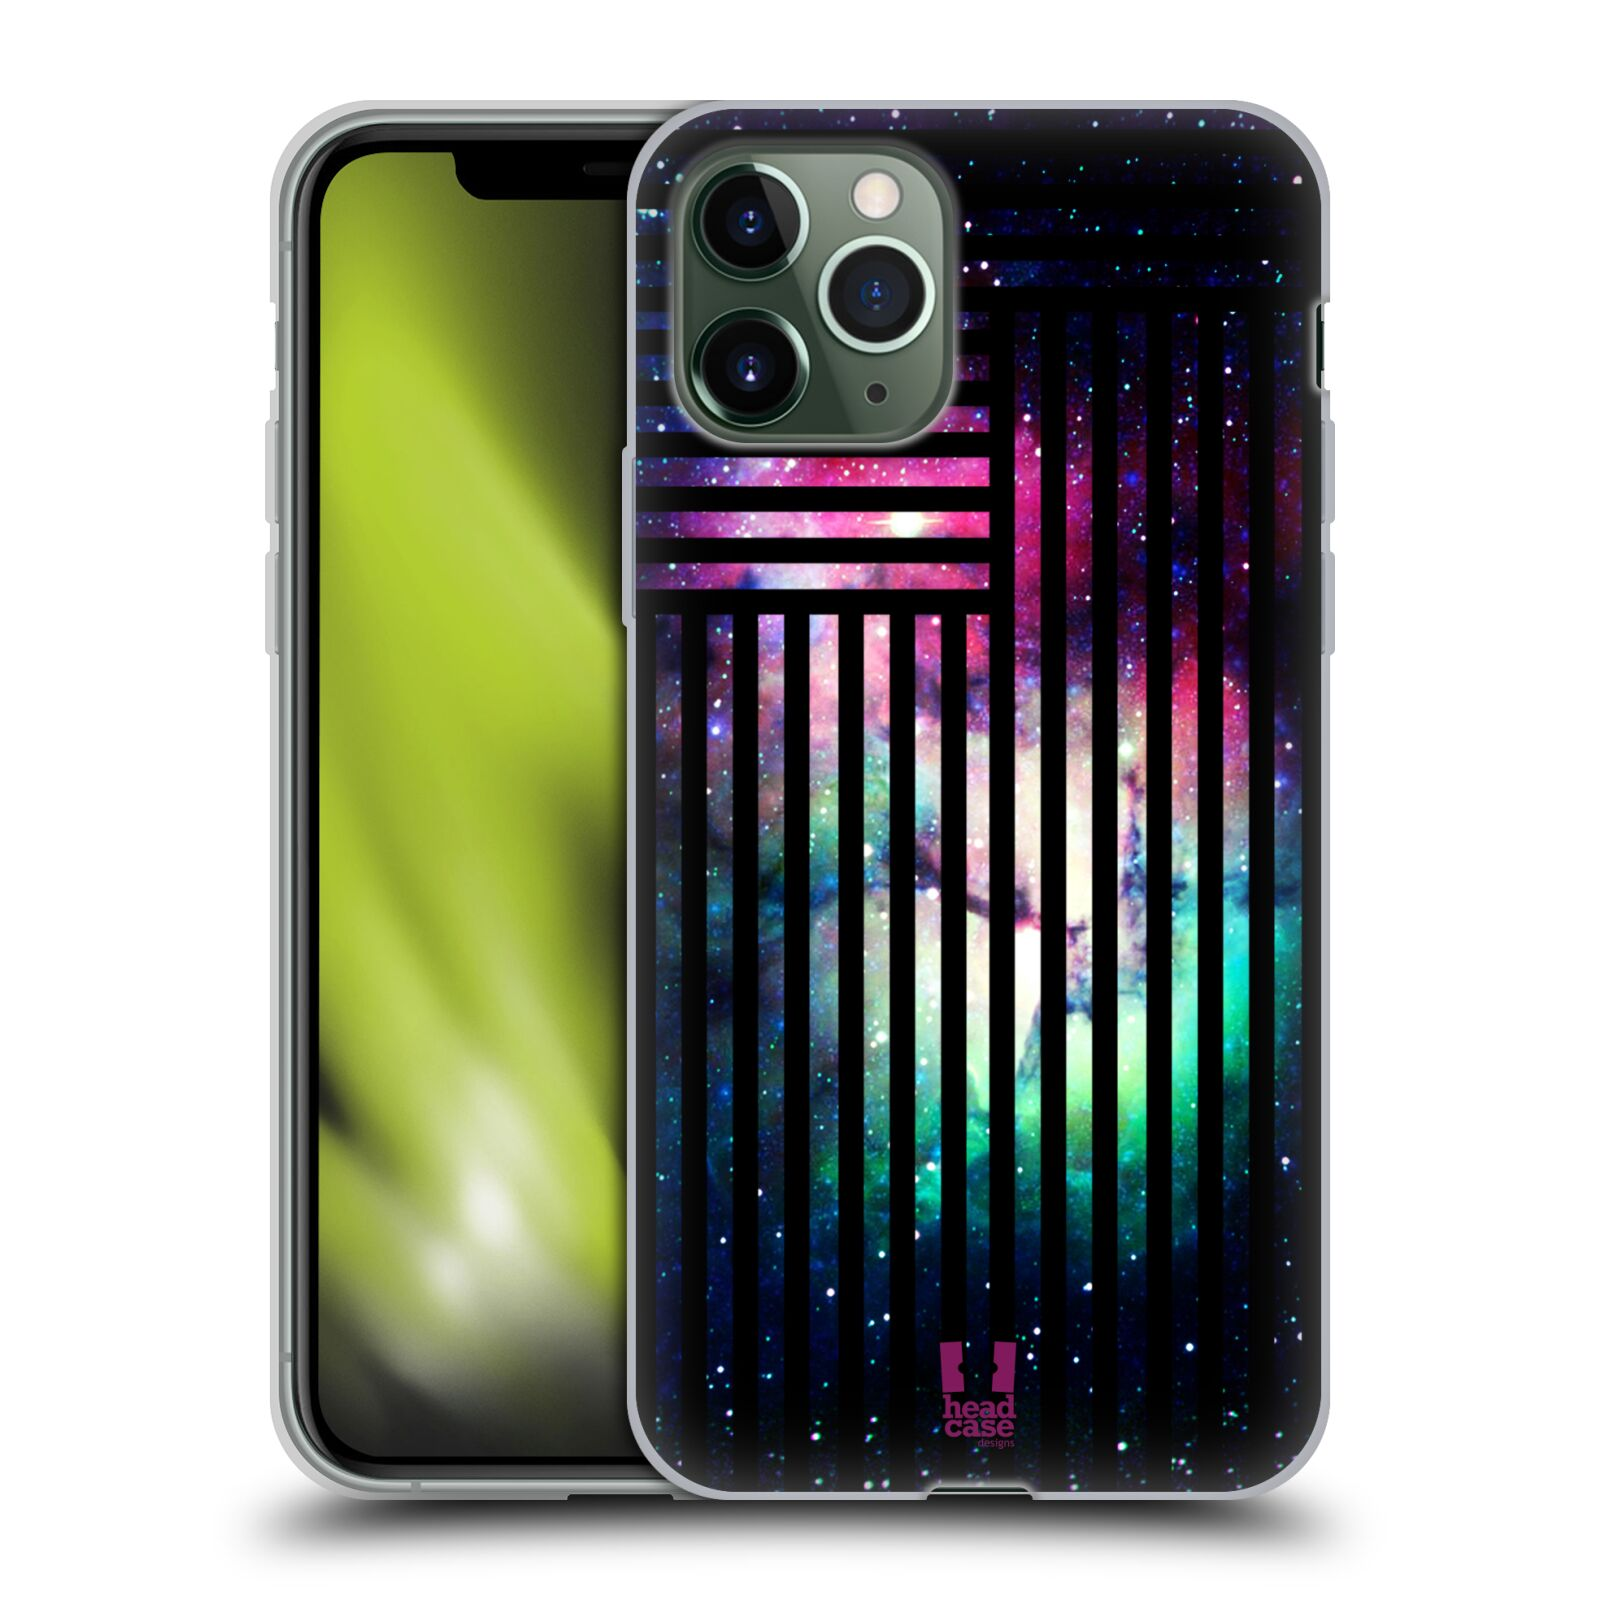 gumový obaly iphone 11 | Silikonové pouzdro na mobil Apple iPhone 11 Pro - Head Case - MIX NEBULA STRIPES